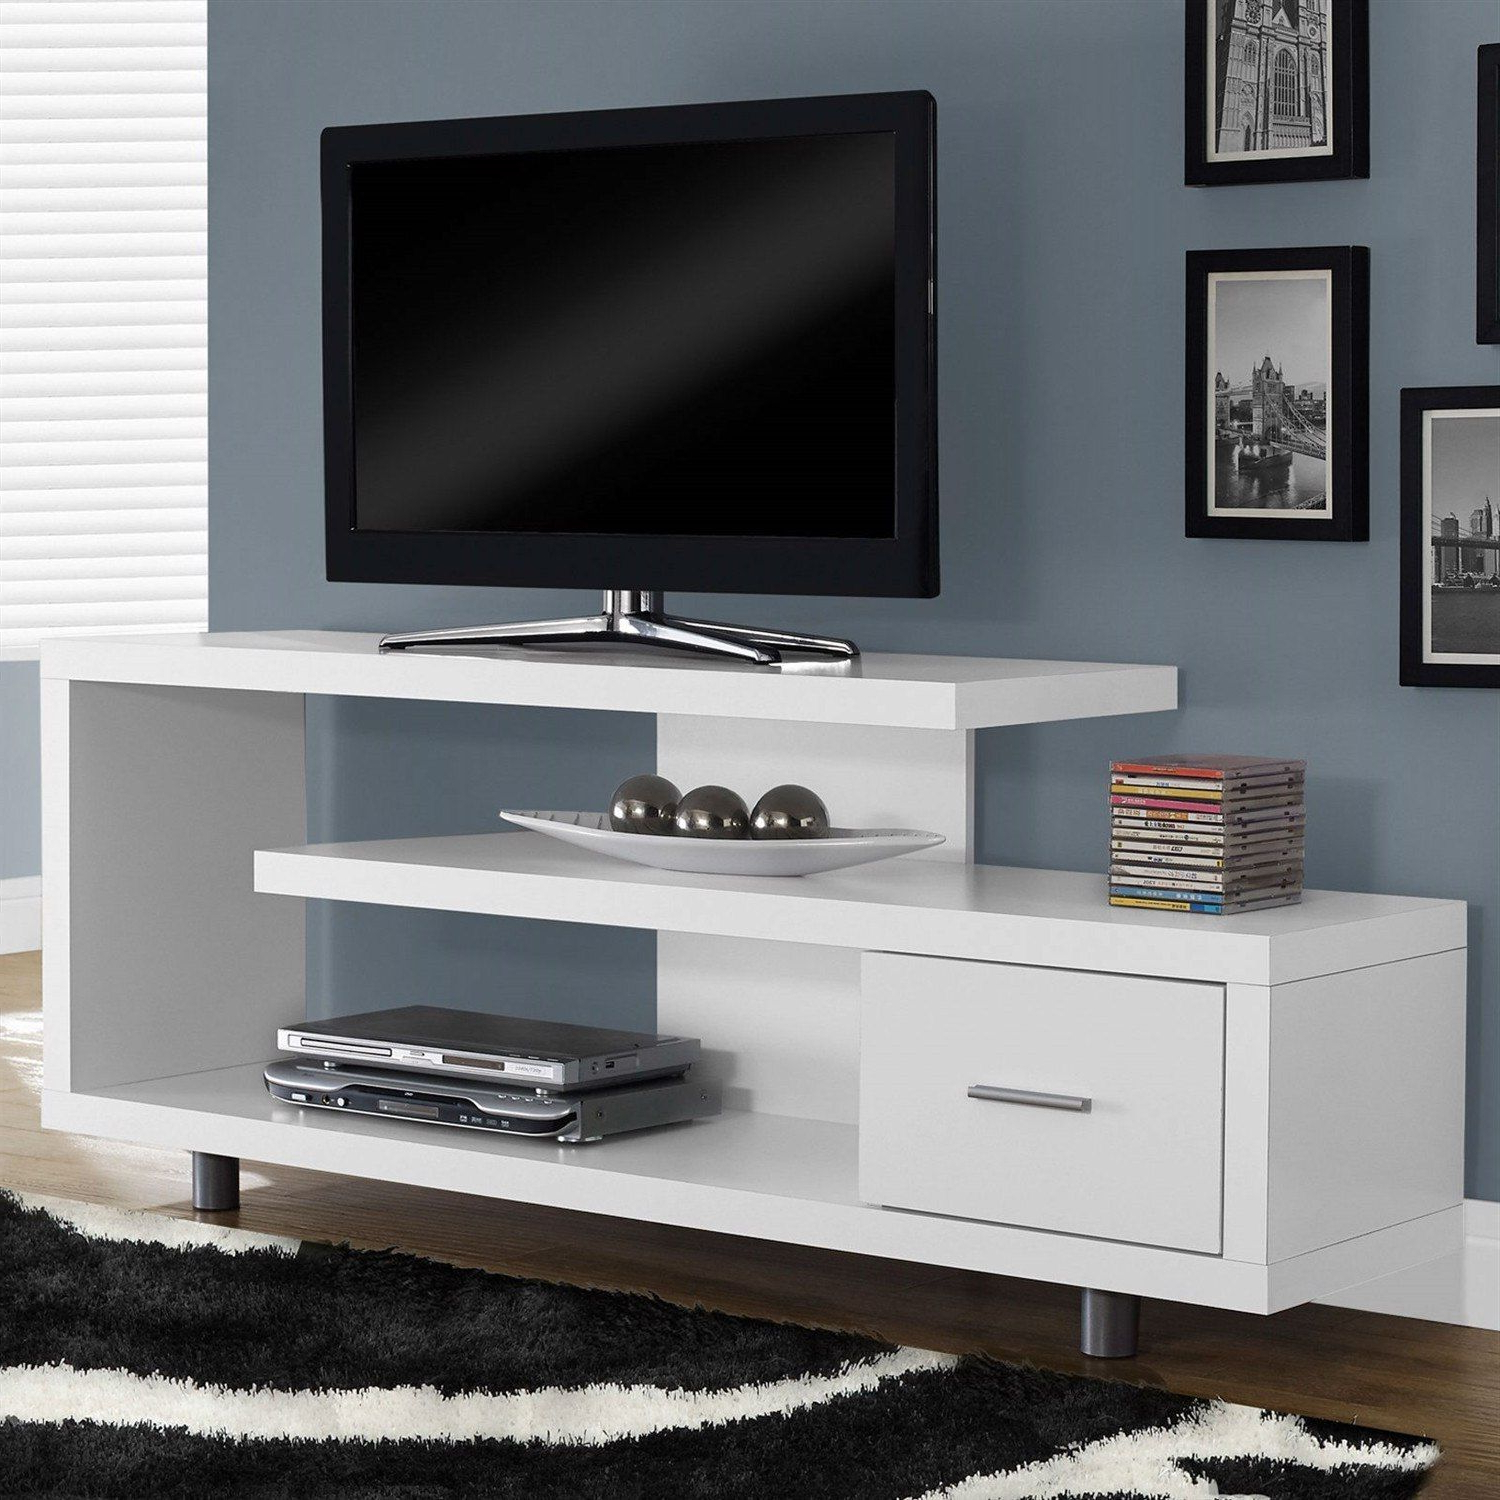 White Modern Tv Stand – Fits Up To 60 Inch Flat Screen Tv (View 3 of 20)